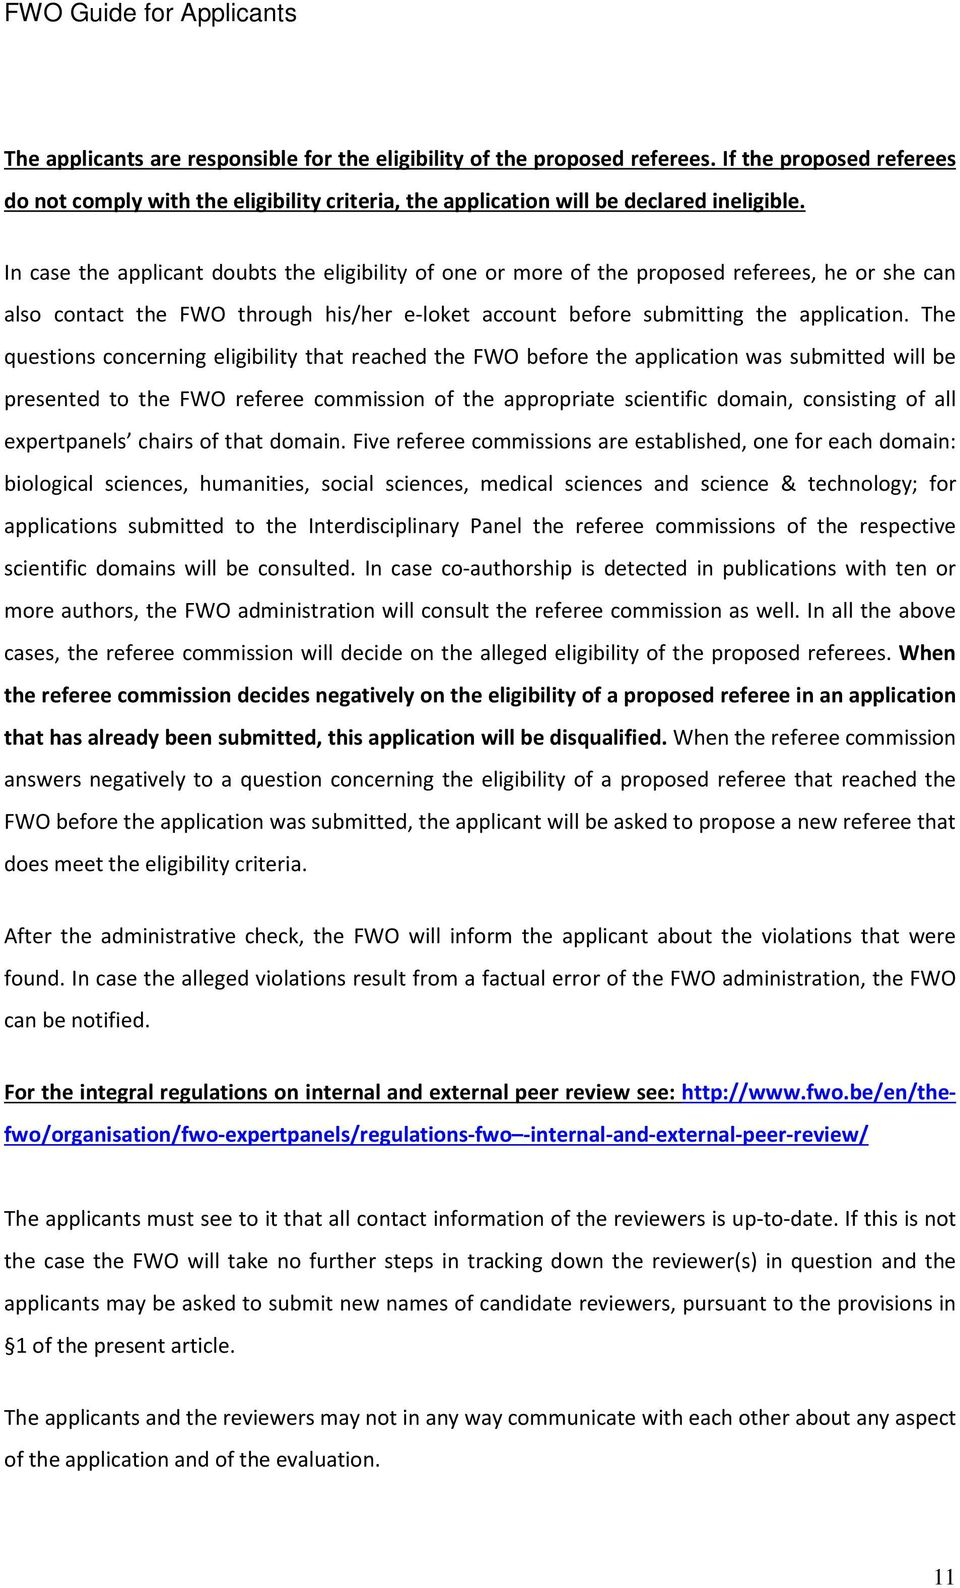 The questions concerning eligibility that reached the FWO before the application was submitted will be presented to the FWO referee commission of the appropriate scientific domain, consisting of all